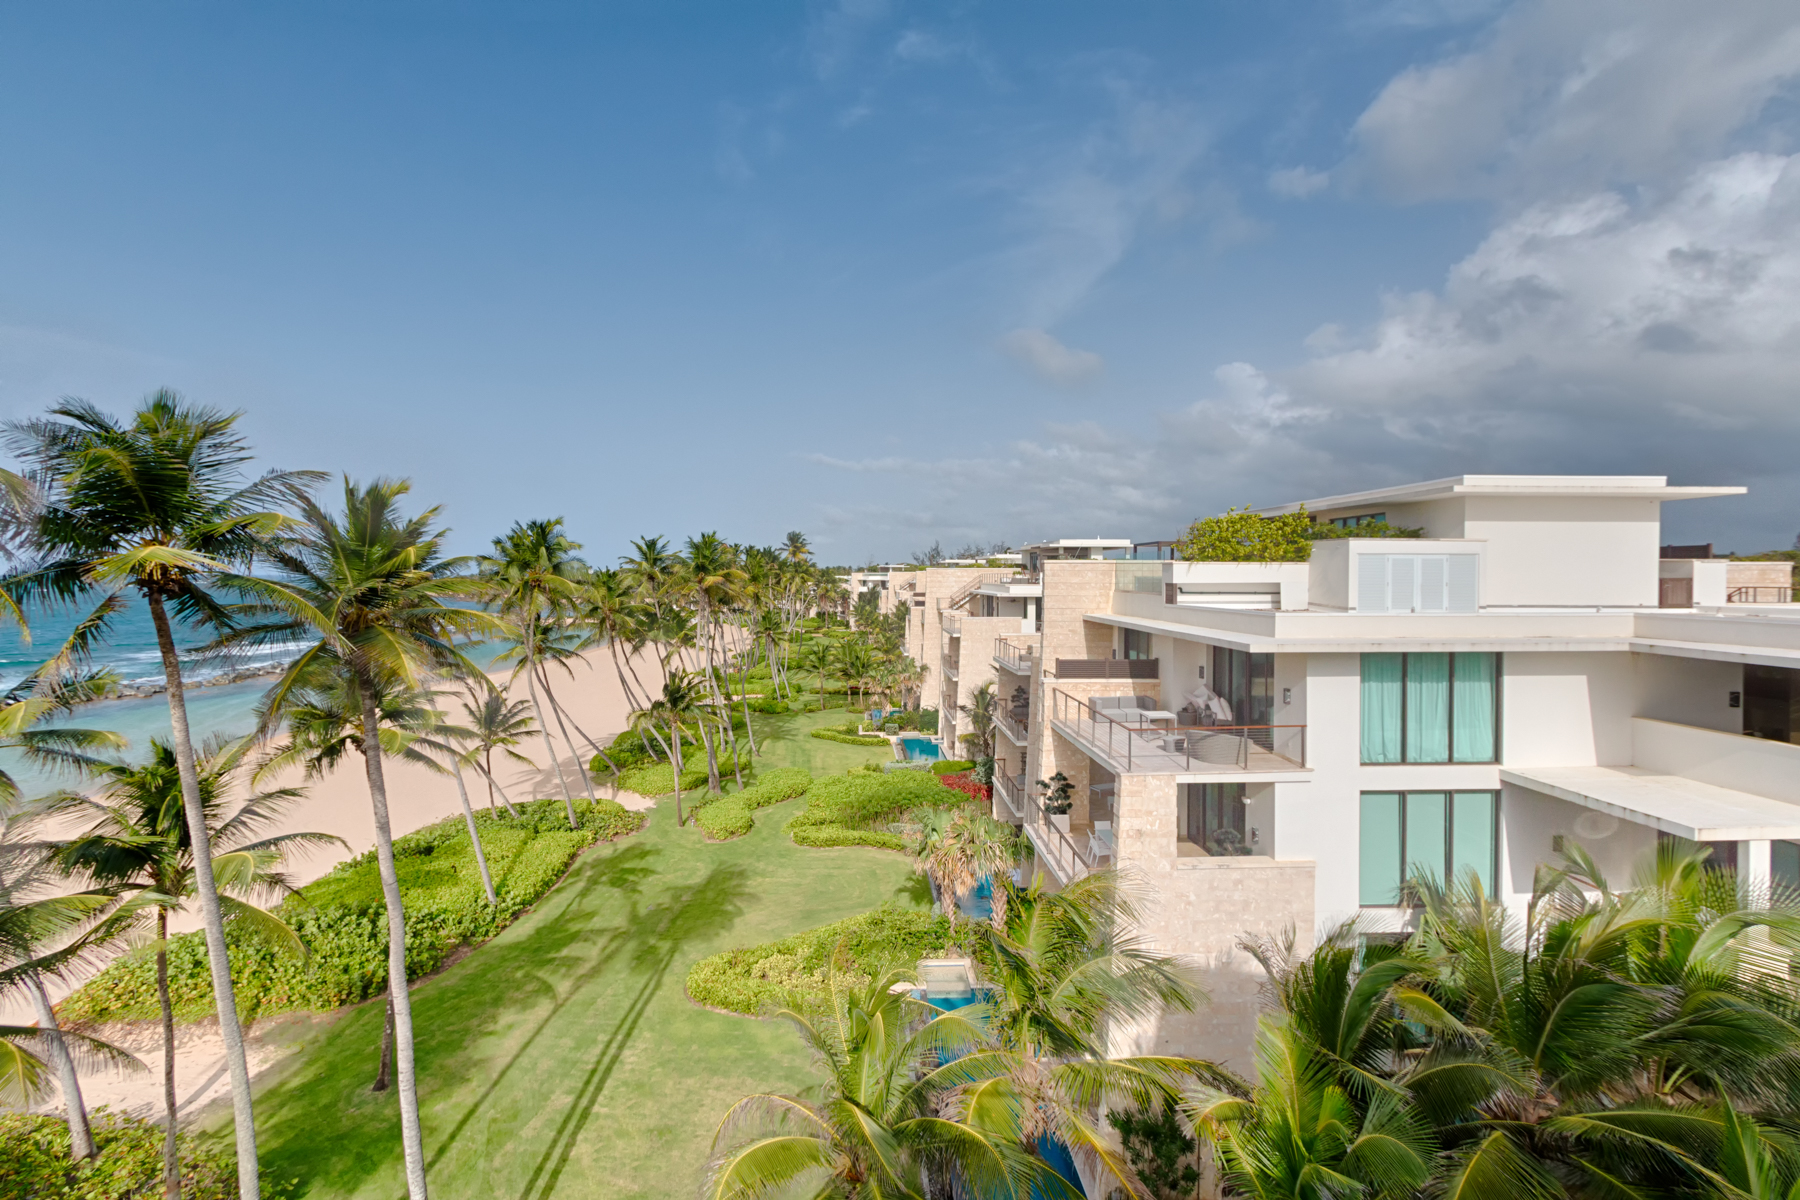 Additional photo for property listing at Branded Beachfront Penthouse 3641 200 Dorado Beach Drive Ritz Carlton Reserve Dorado Beach, Puerto Rico 00646 Puerto Rico